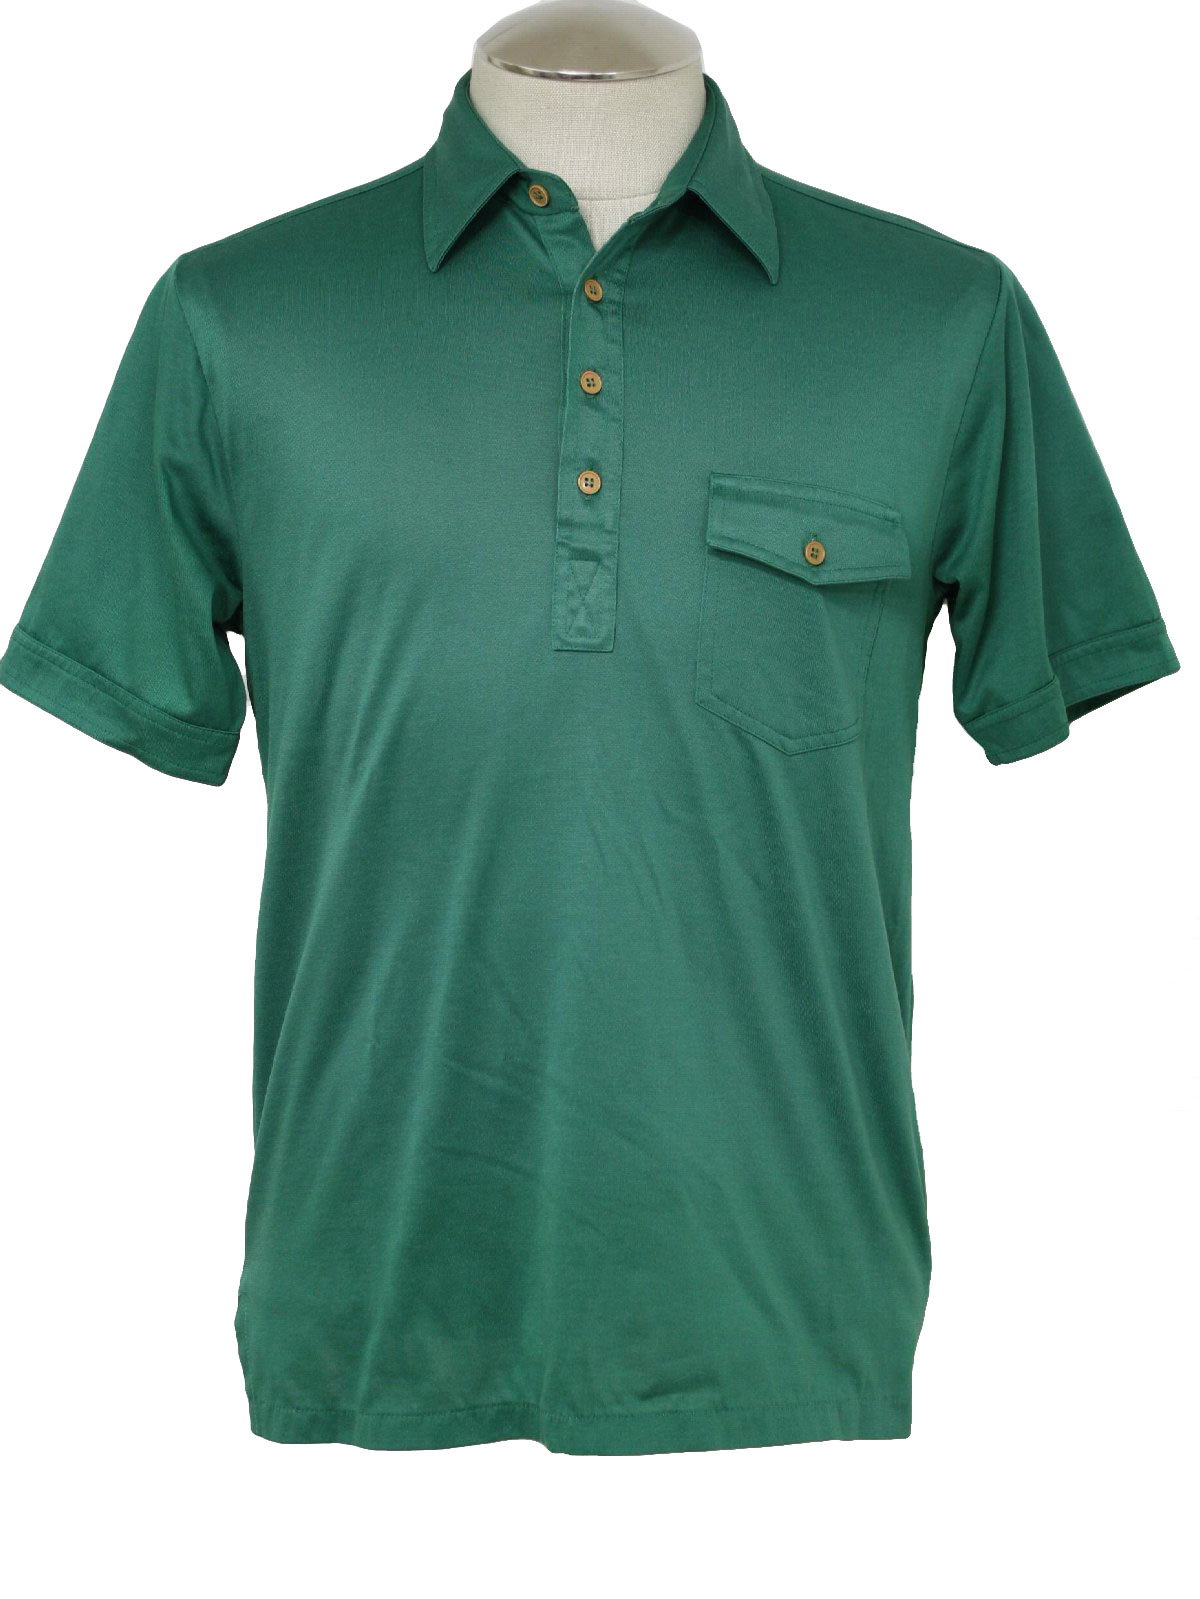 Golf T-Shirts - Carl's Golfland